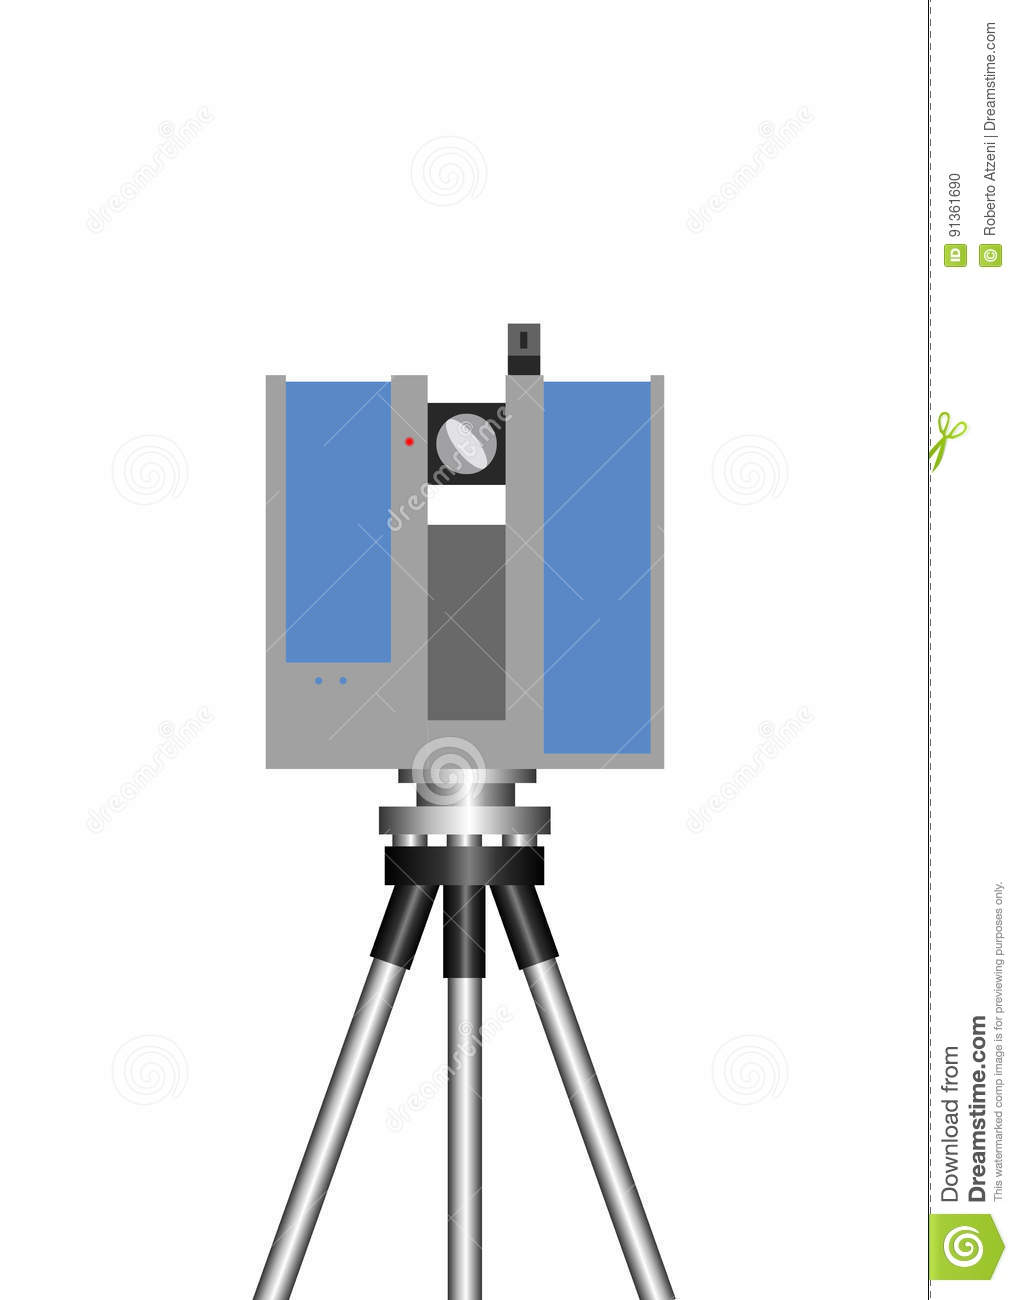 theodolite cartoons illustrations vector stock images 166 pictures to download from. Black Bedroom Furniture Sets. Home Design Ideas